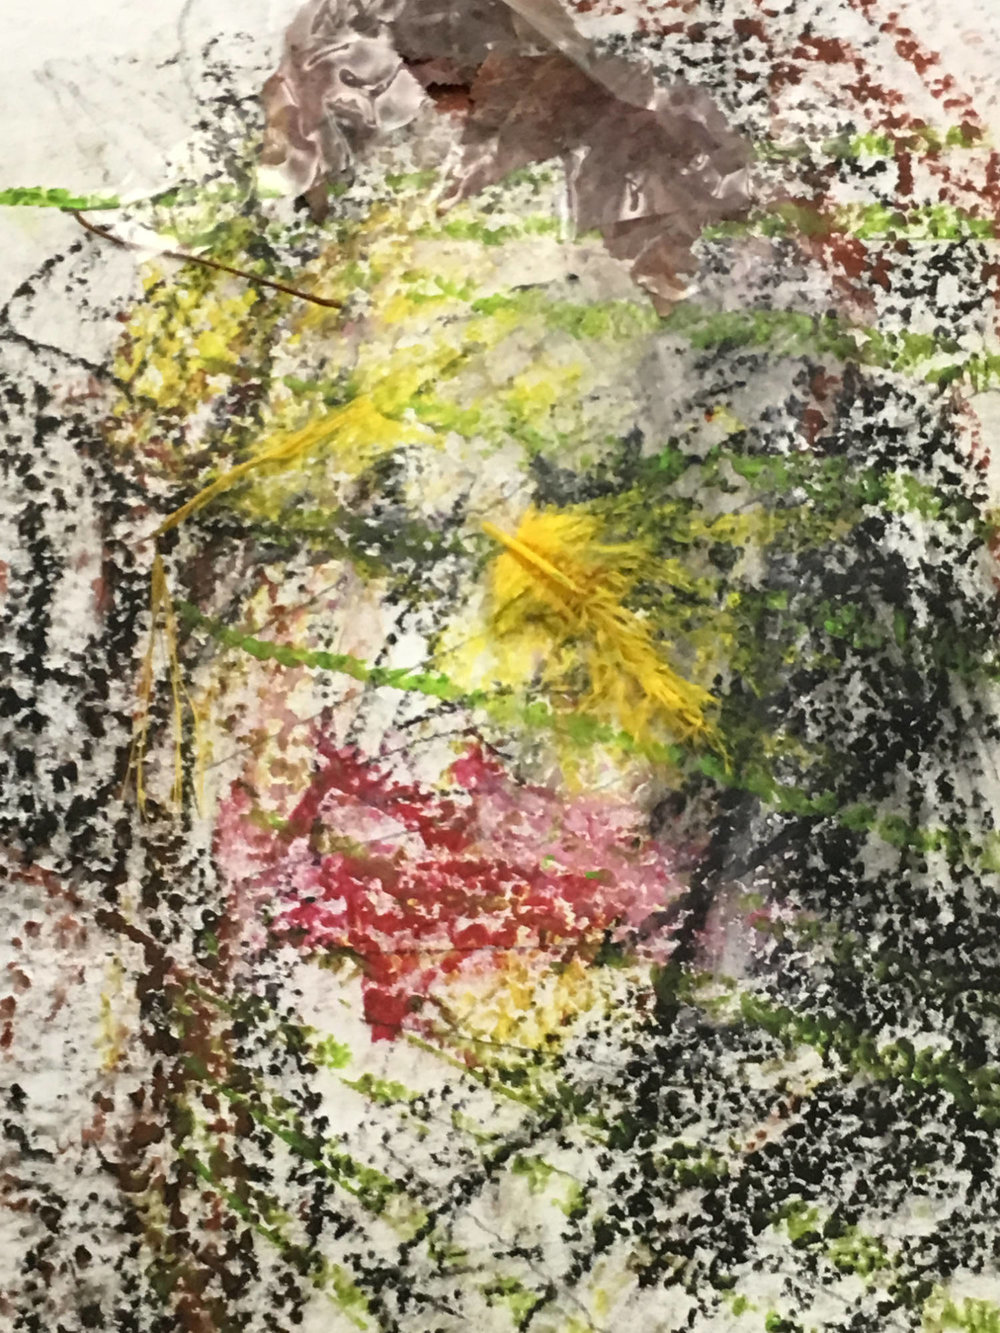 Wilson, Ronaldo V.  Lucy: Self Portrait 1 .2017. (Detail) Artist's Collection, Port Jefferson Station, NY. Water Soluble Pastels, tape, synthetic dyed feathers, flora, on paper. 6 X 2 ft.